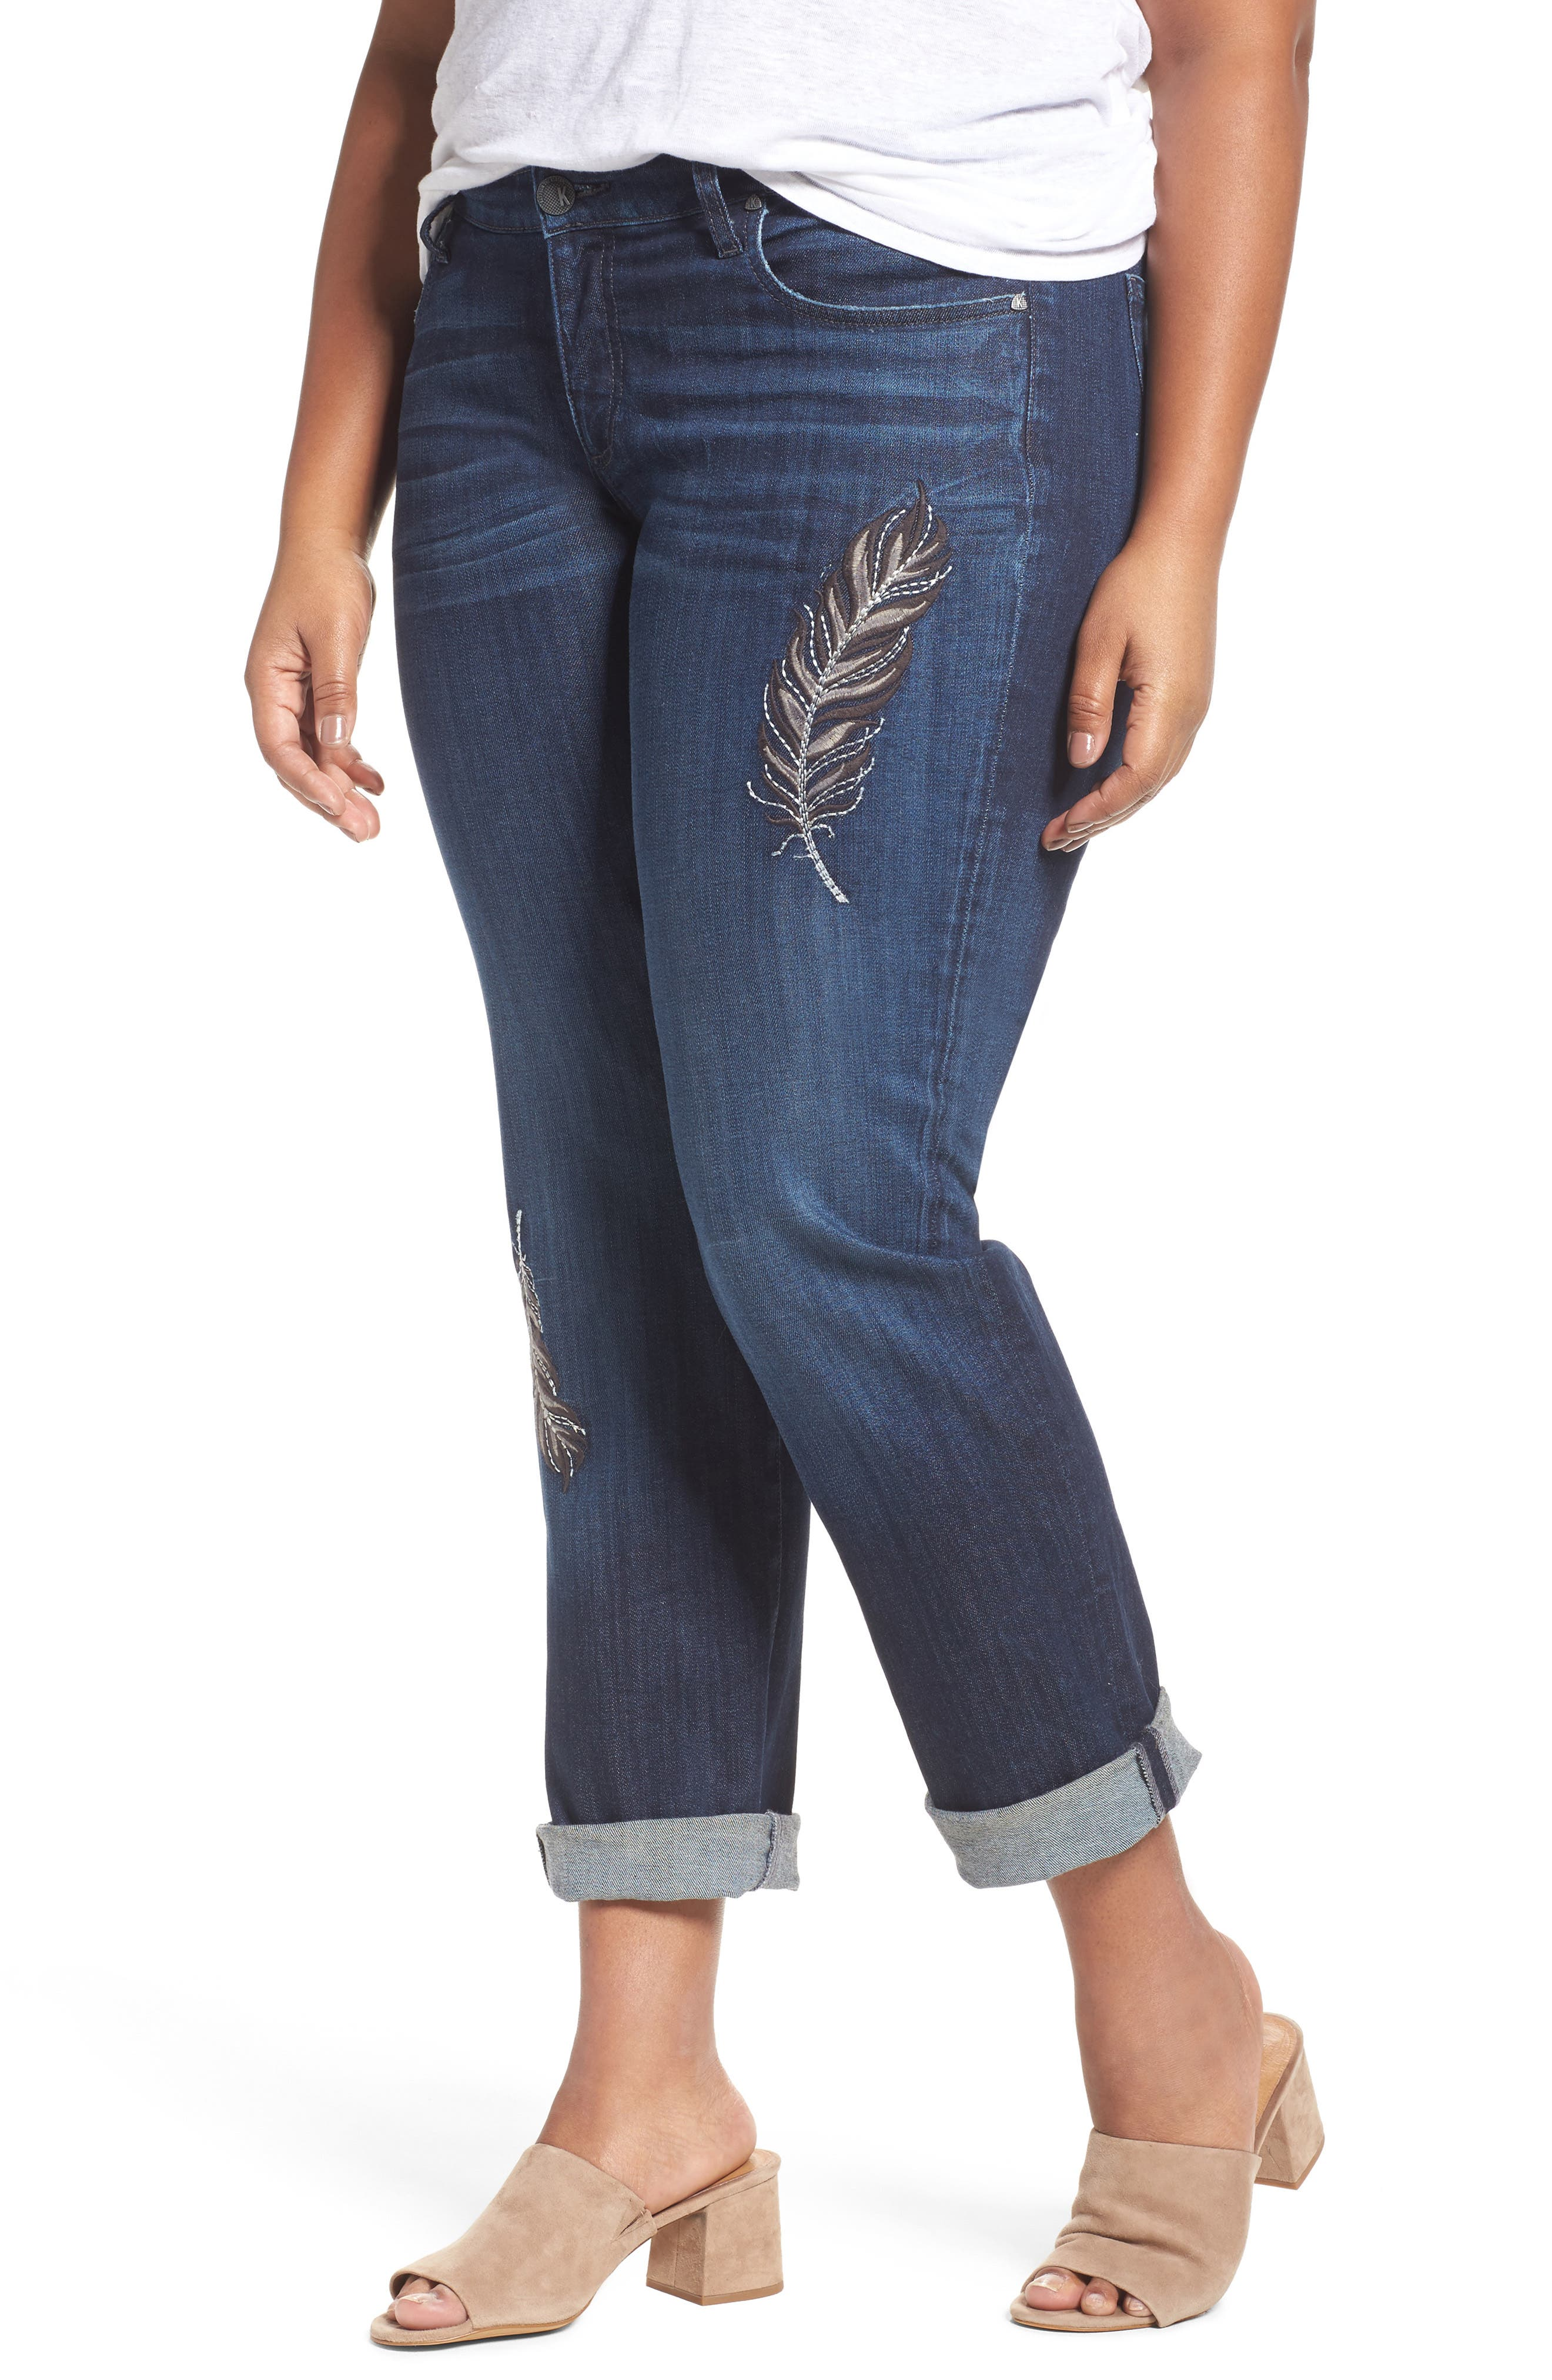 Main Image - KUT from The Kloth Catherine Boyfriend Jeans (Overt Dark Stone Base Wash) (Plus Size)